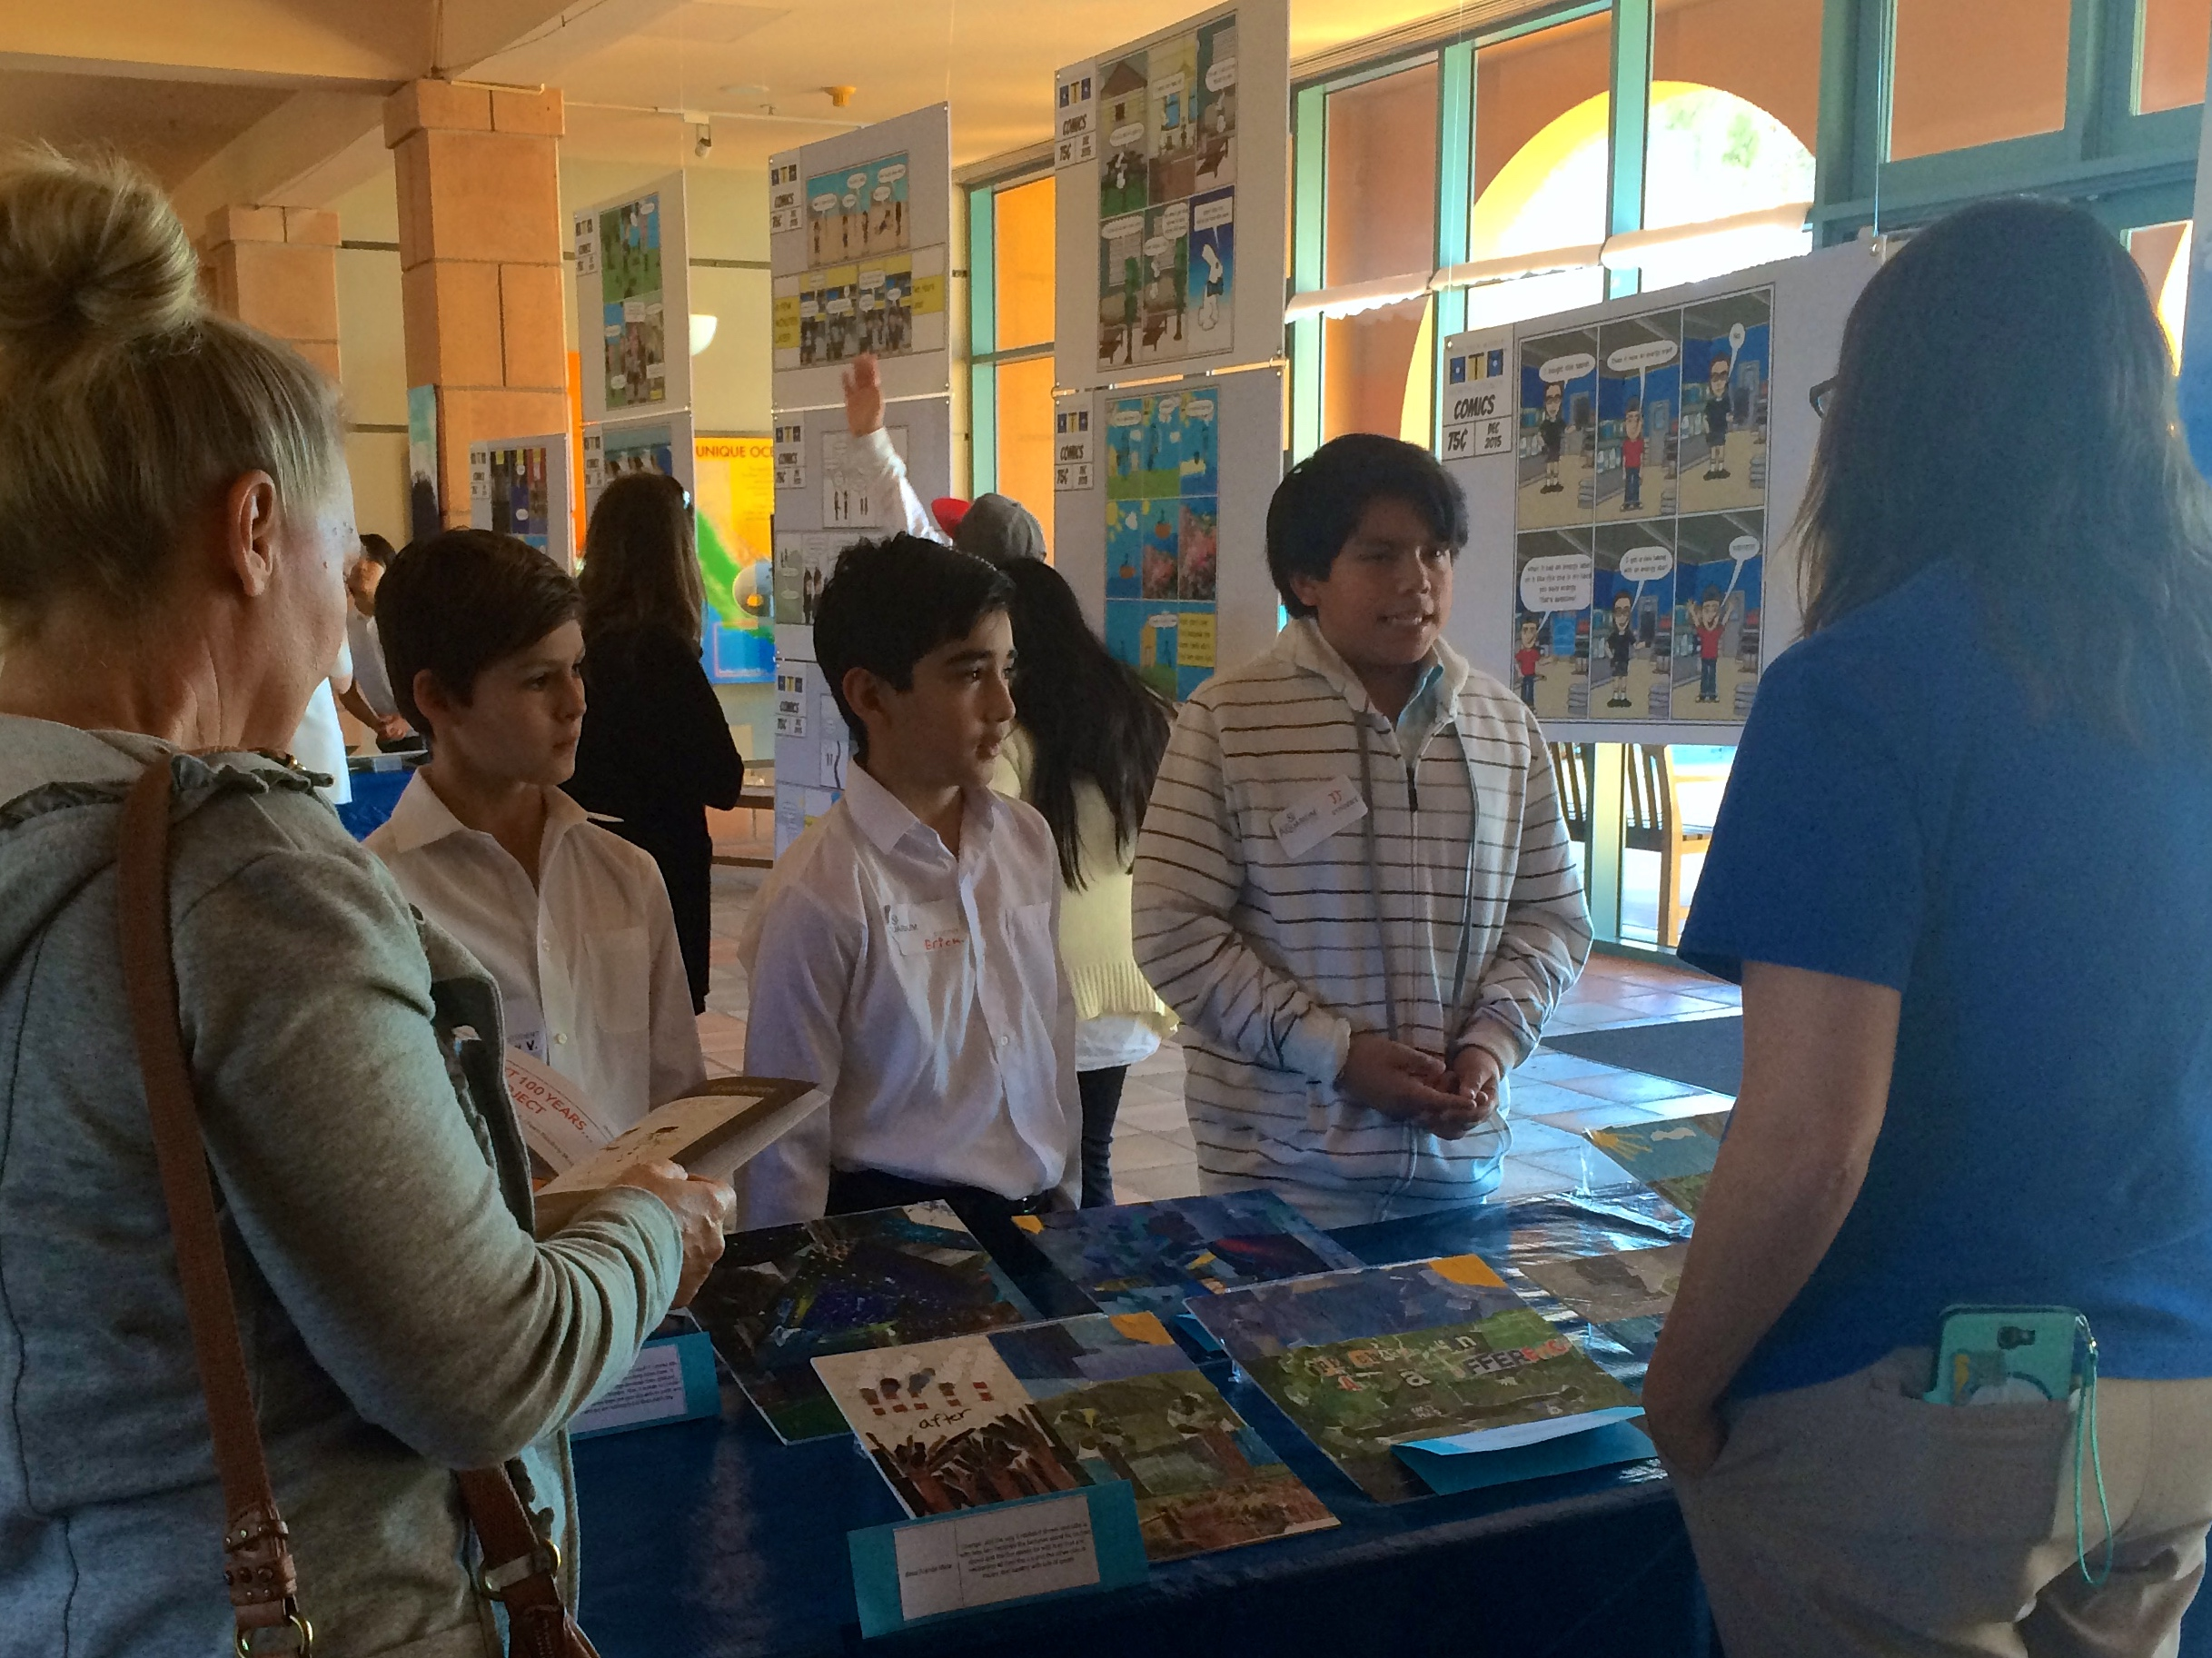 Students from High Tech Middle School in San Diego present their climate change projects.